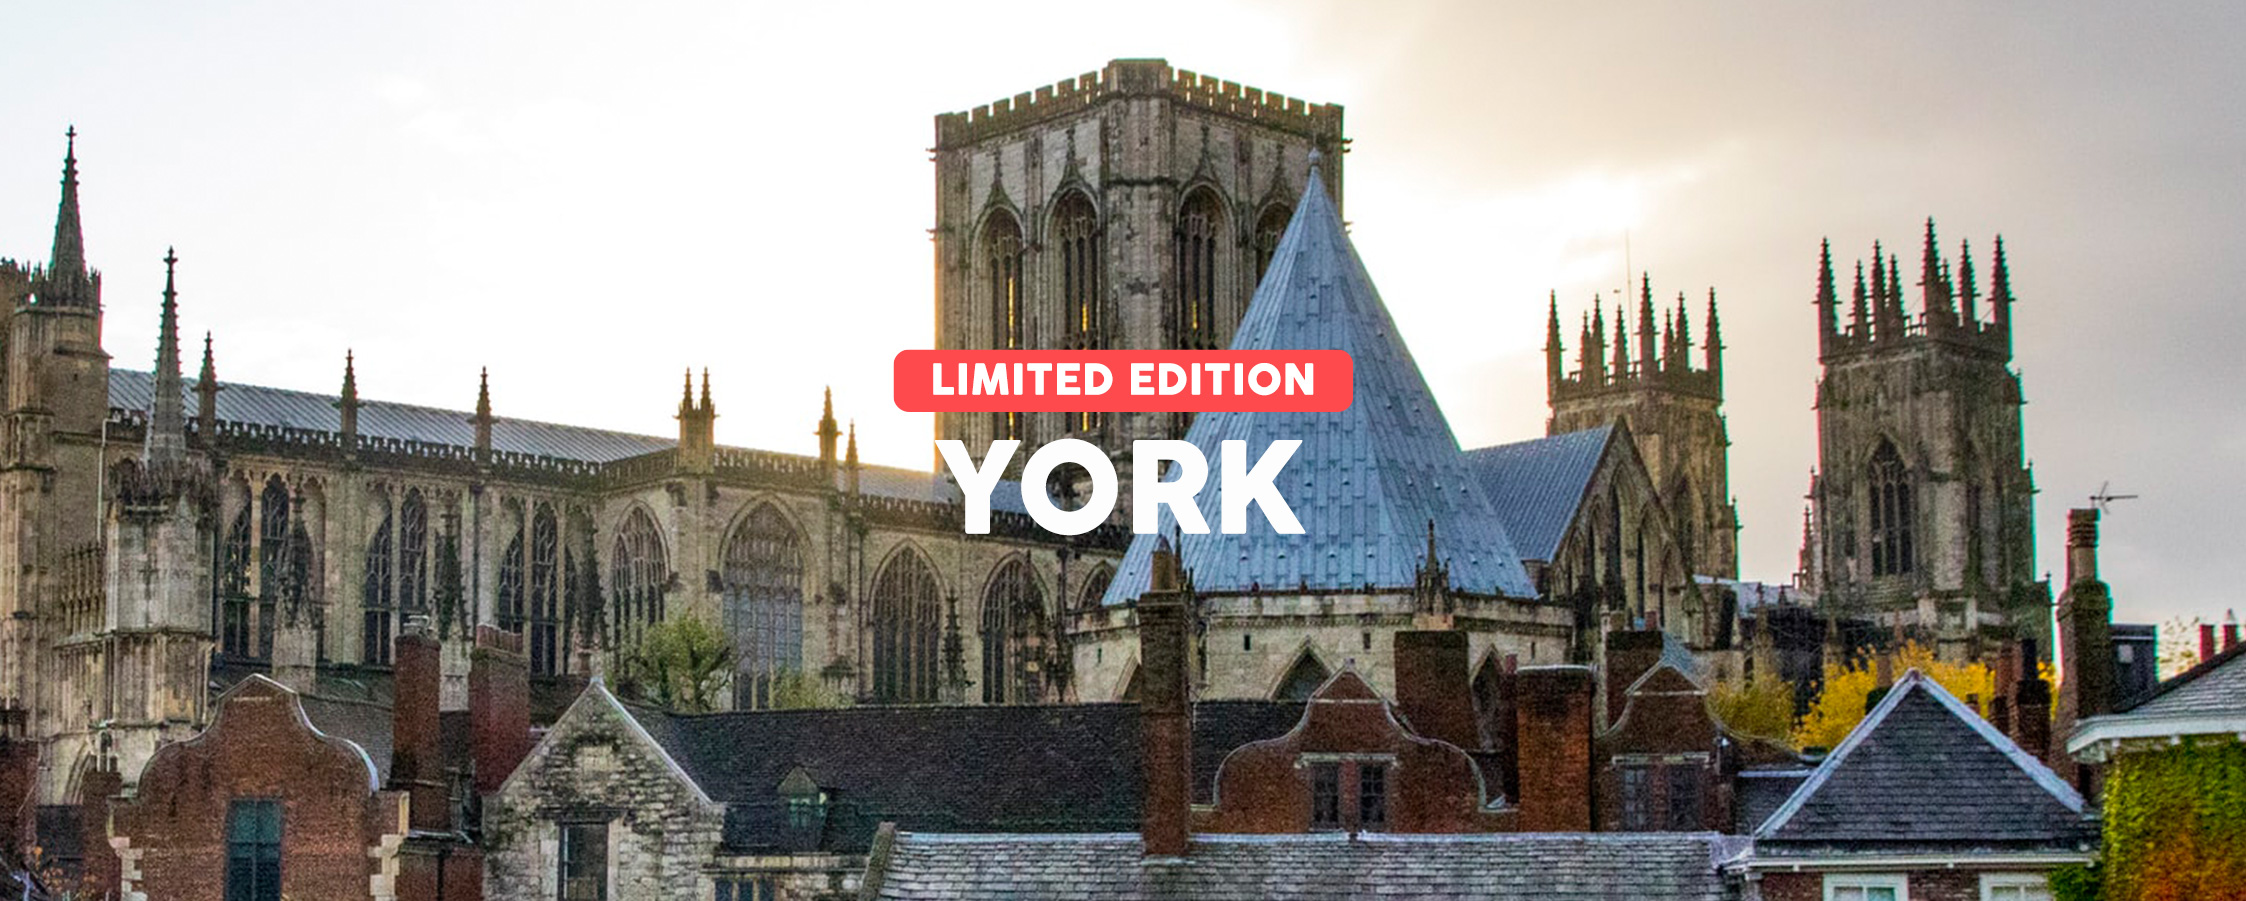 51DN-Frontpage-Banner-York1